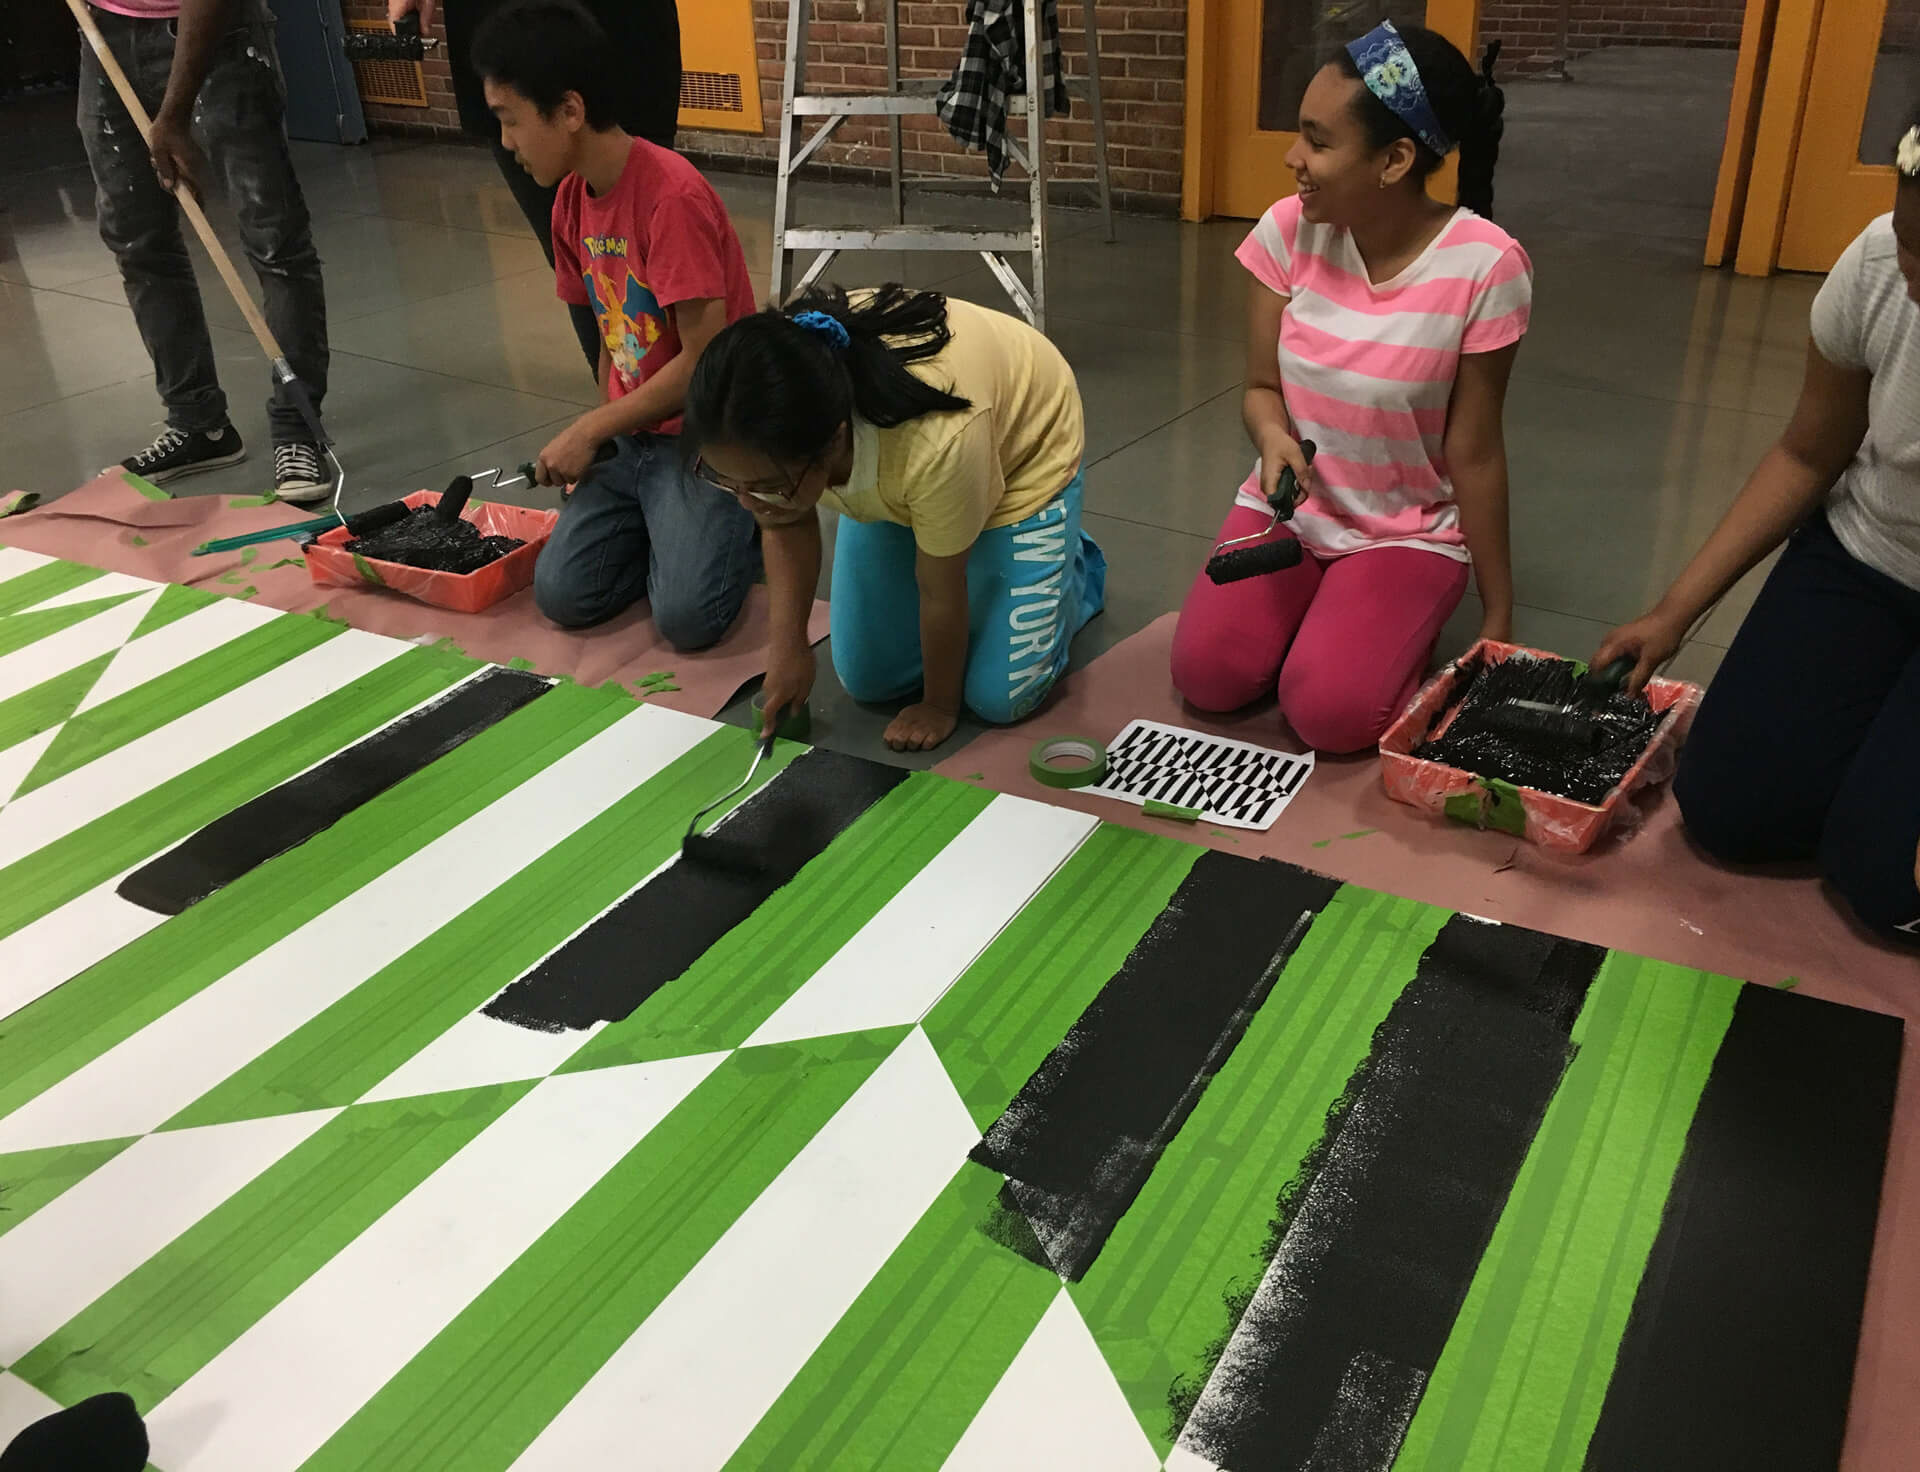 Mural designed by Carmen Herrera painted by Bronx school students